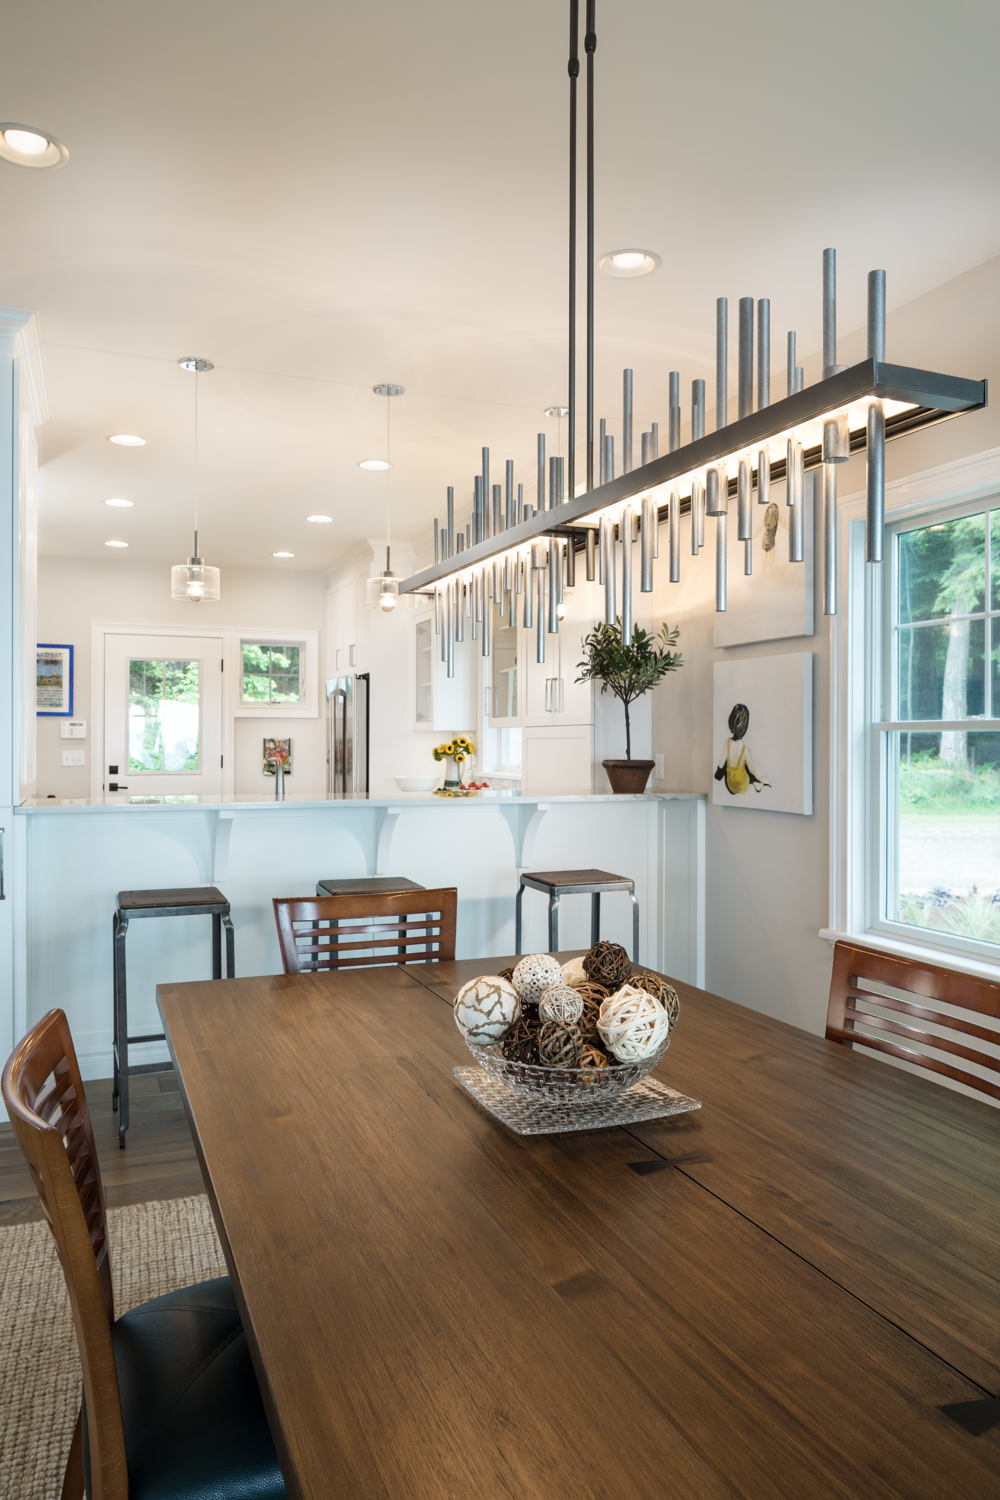 A view of the open dining and kitchen area in a northern Vermont lake home taken by Vermont professional photographer Stina Booth